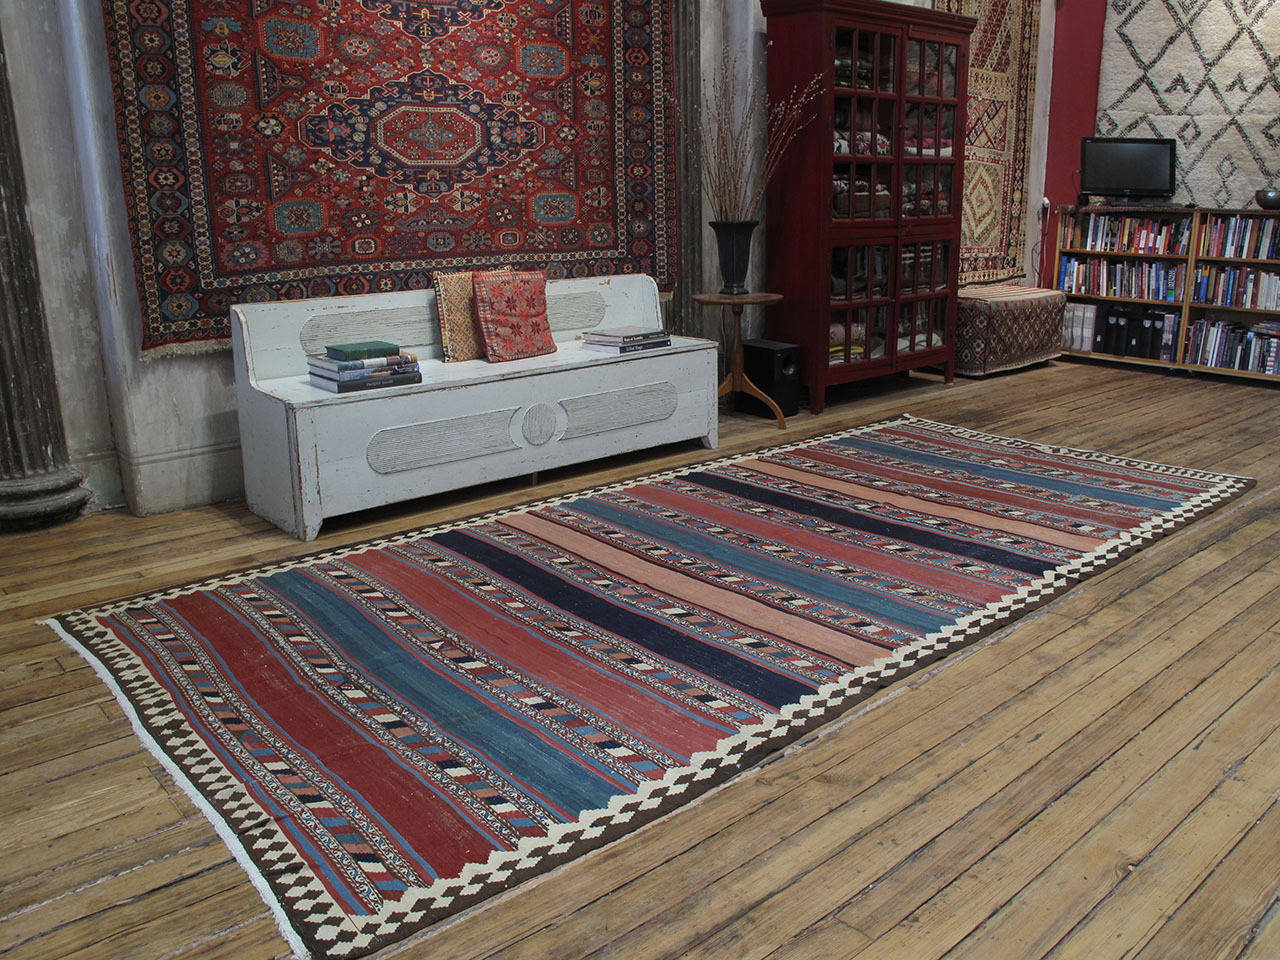 Antique Shahsavan Kilim rug. A beautiful antique tribal flat-weave from Azerbaijan, rug is attributed to the Shahsavan nomads. Designs with alternating bands are common enough among many weaving groups, but this example stands out with its wonderful